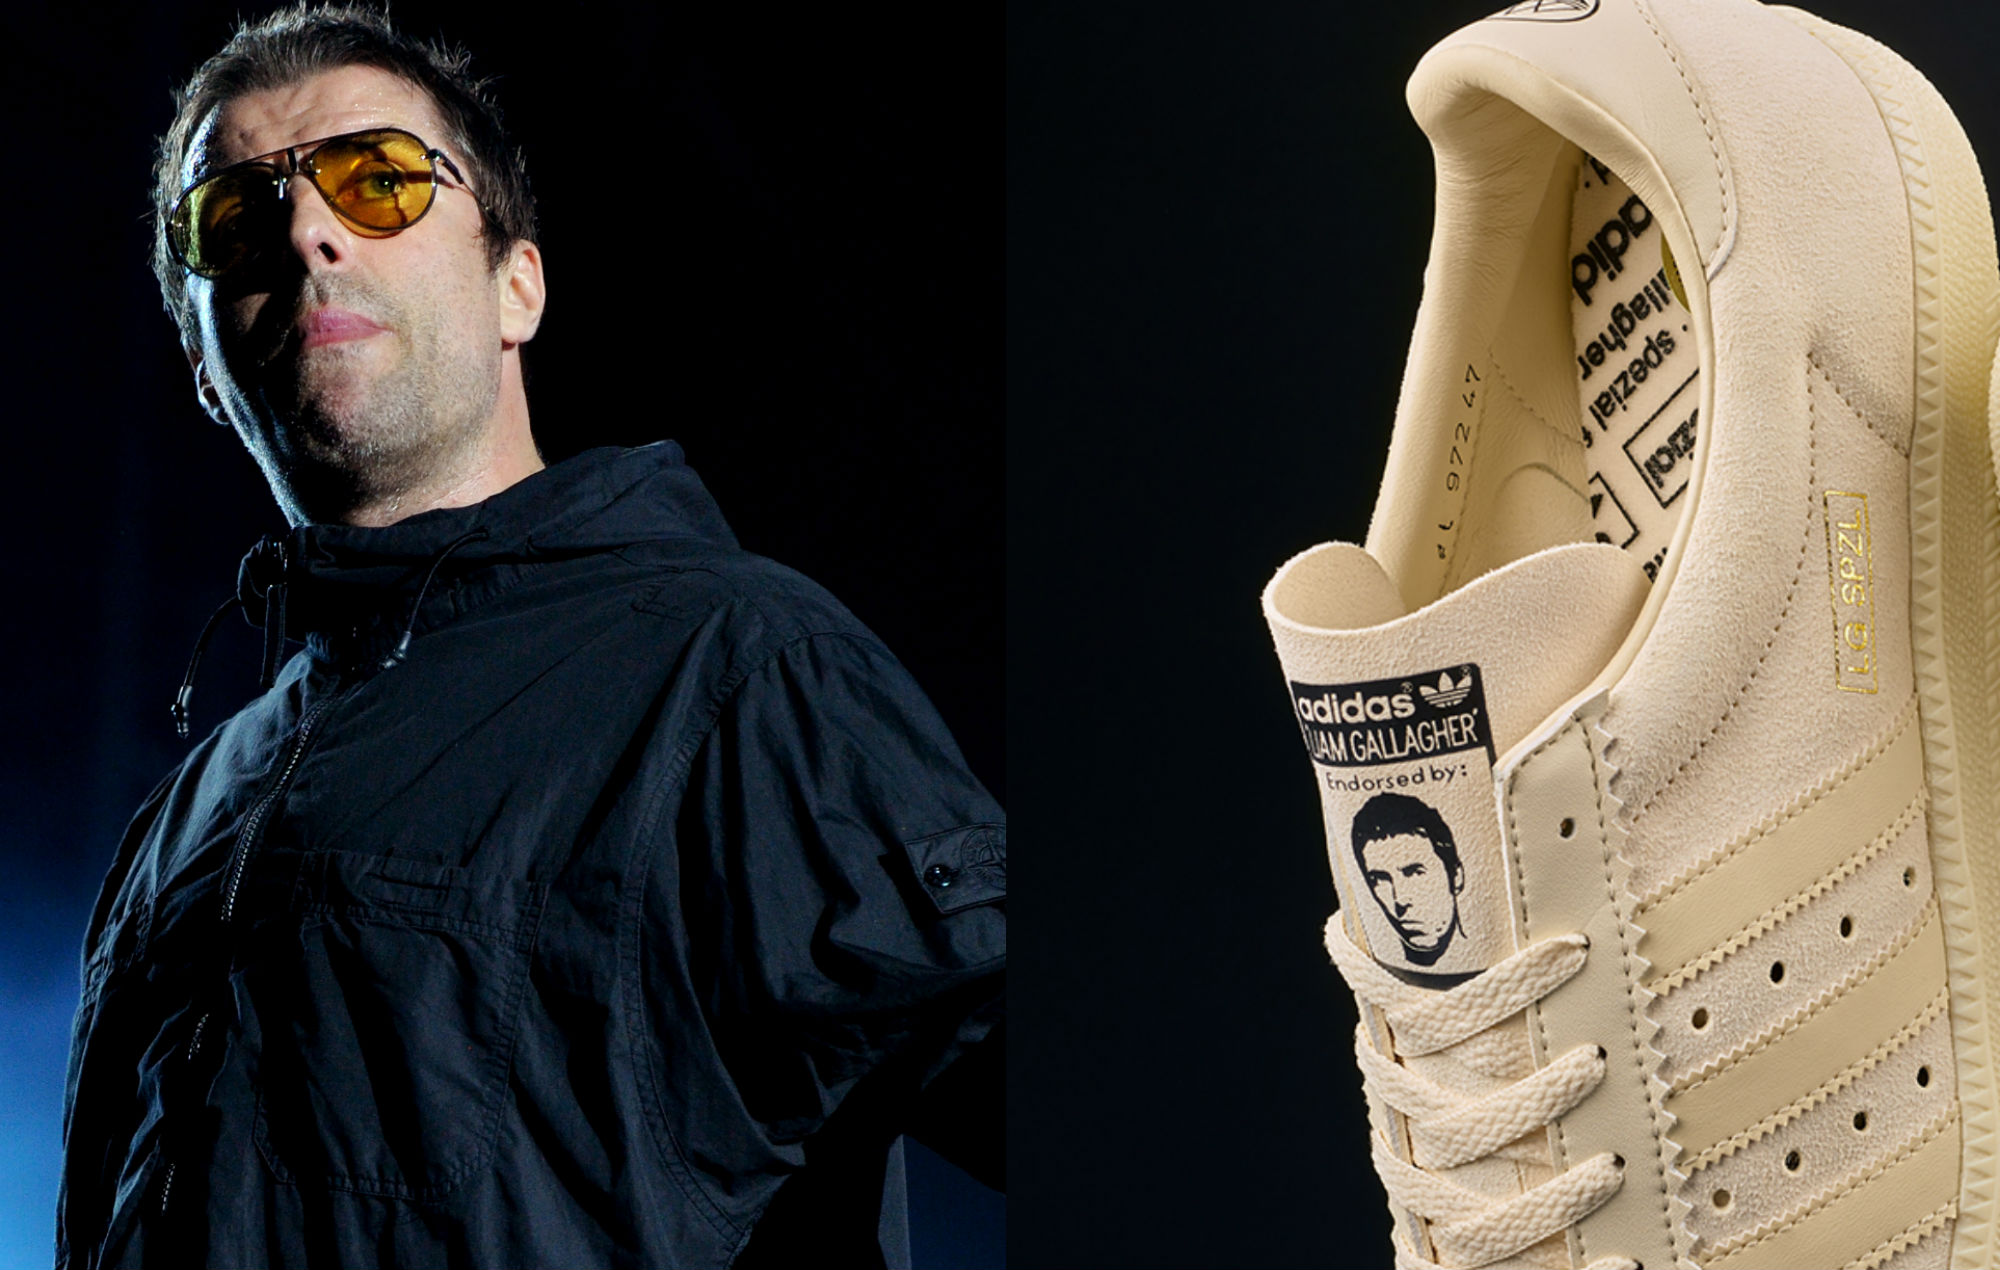 Liam Gallagher fans react as Adidas Spezial range sells out within minutes